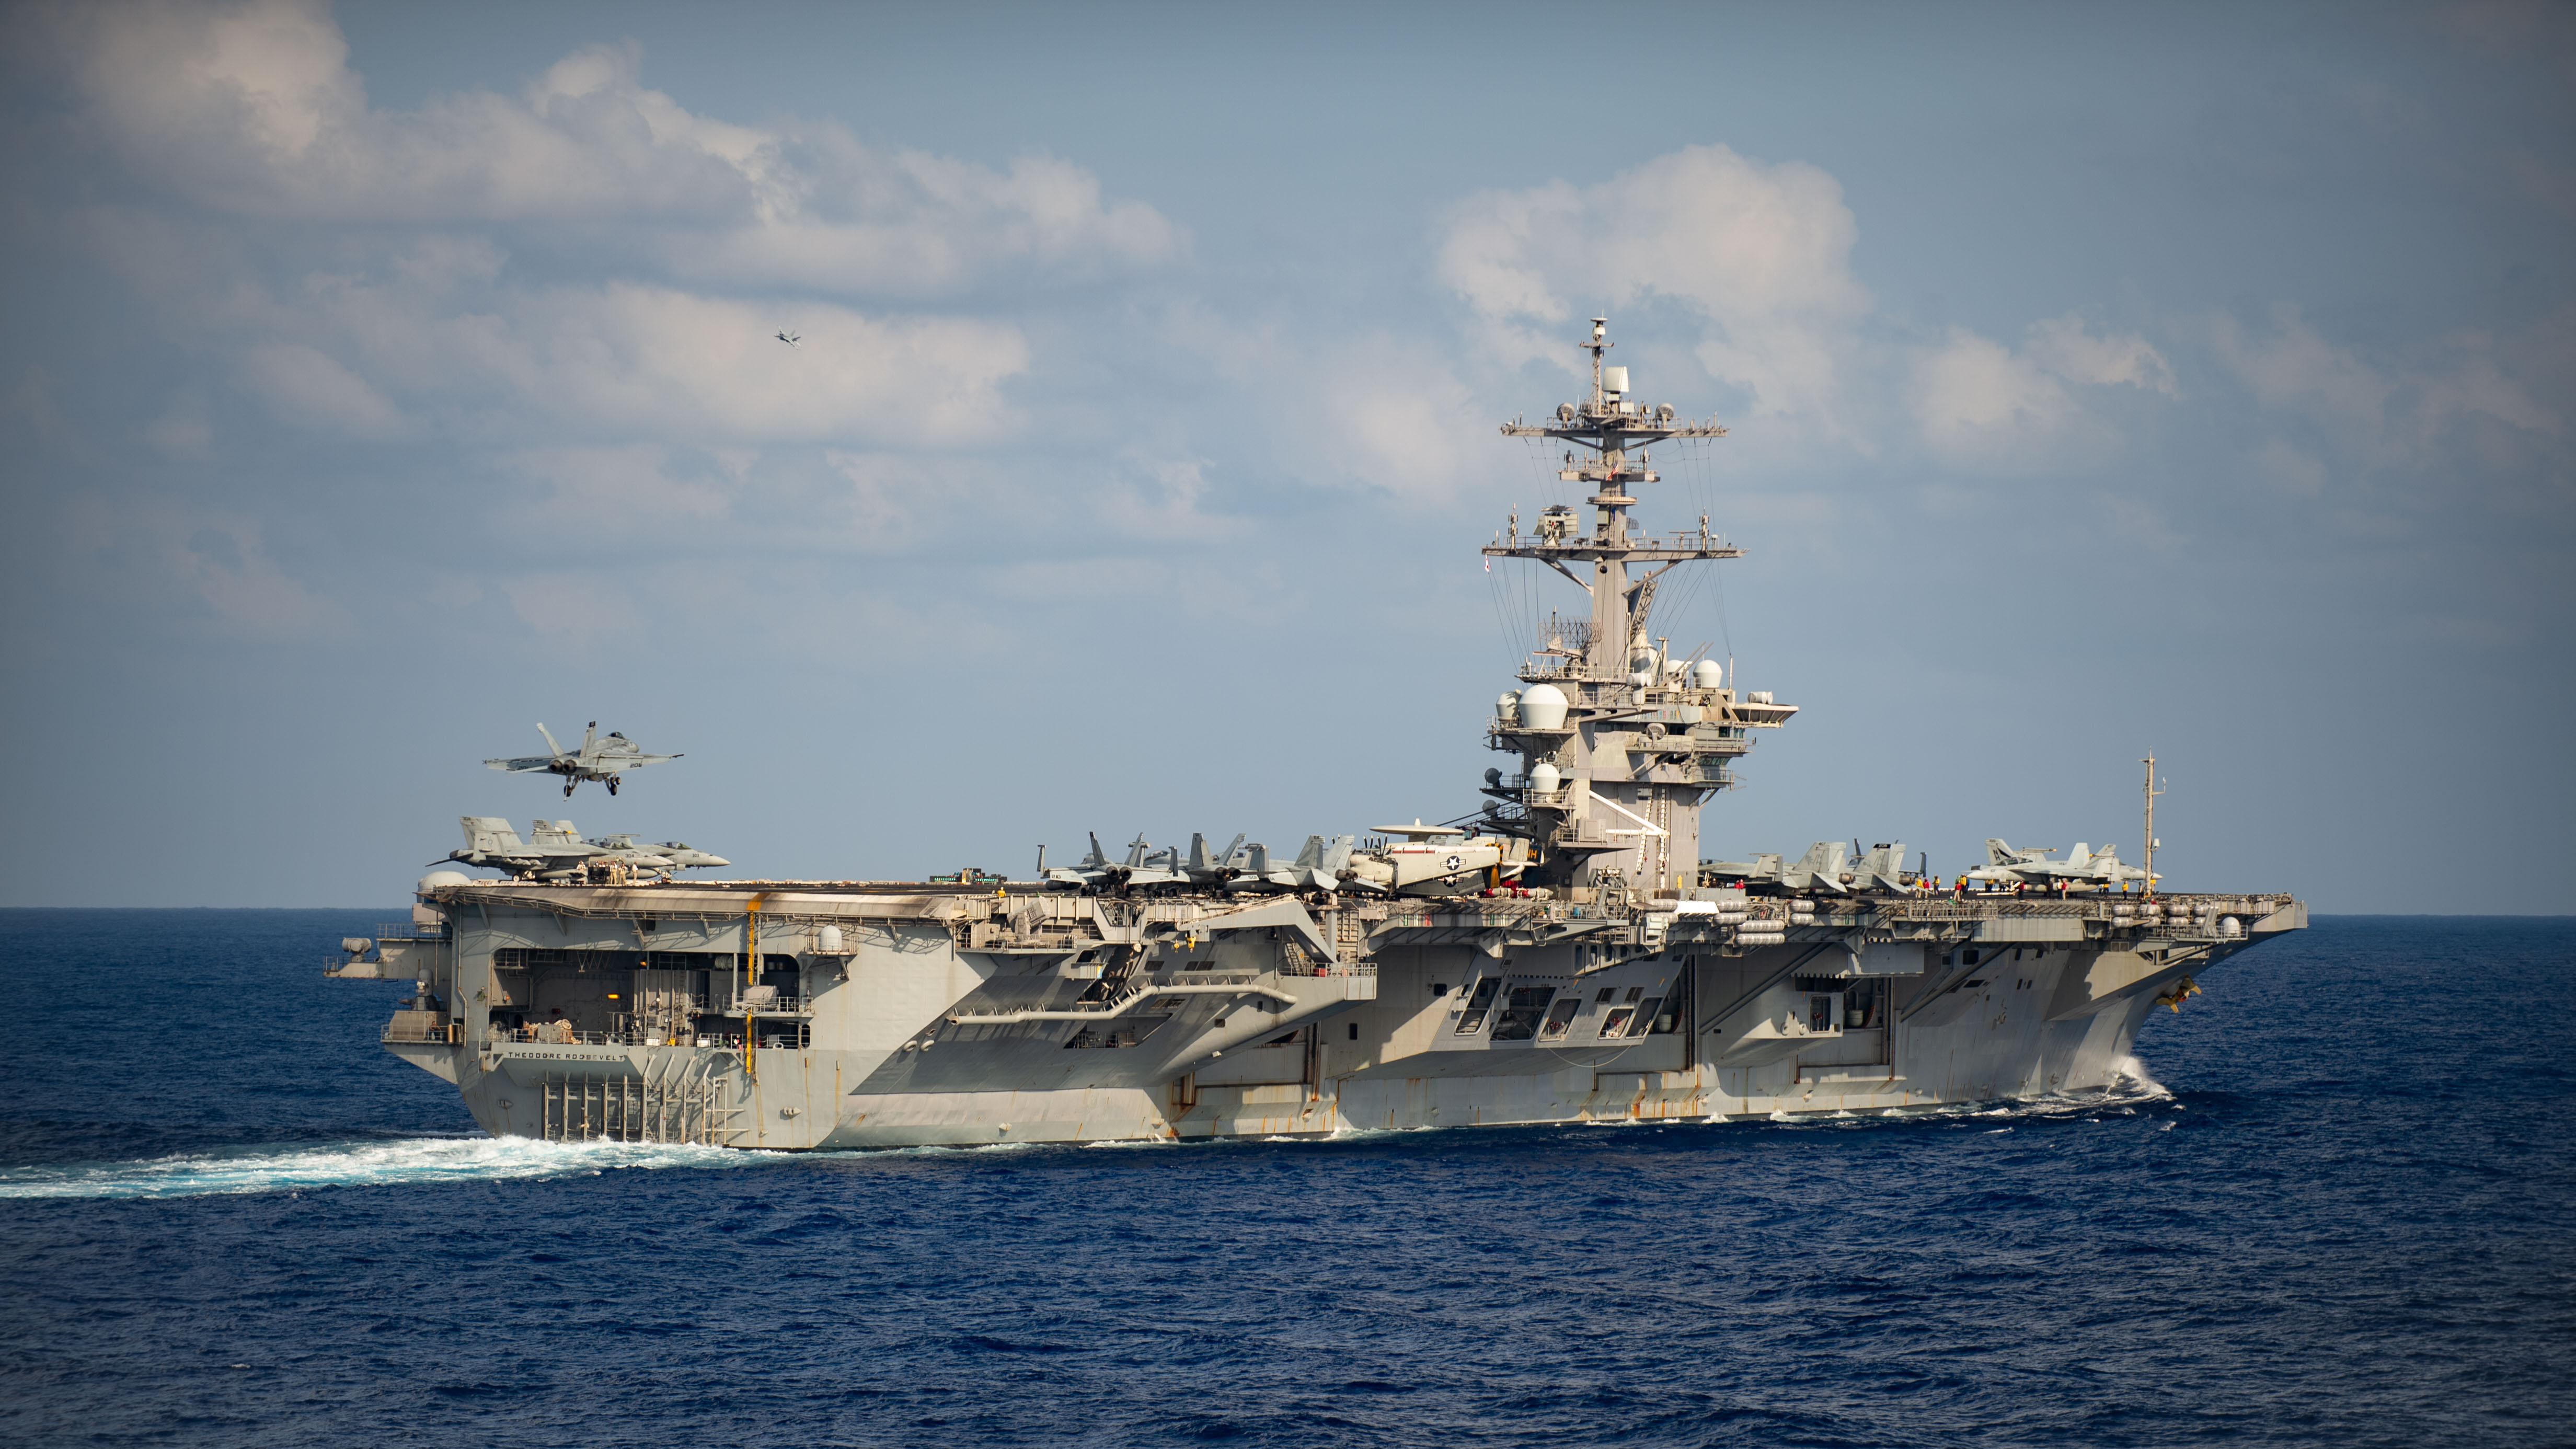 Commander of aircraft carrier hit by coronavirus outbreak asks Navy for more support